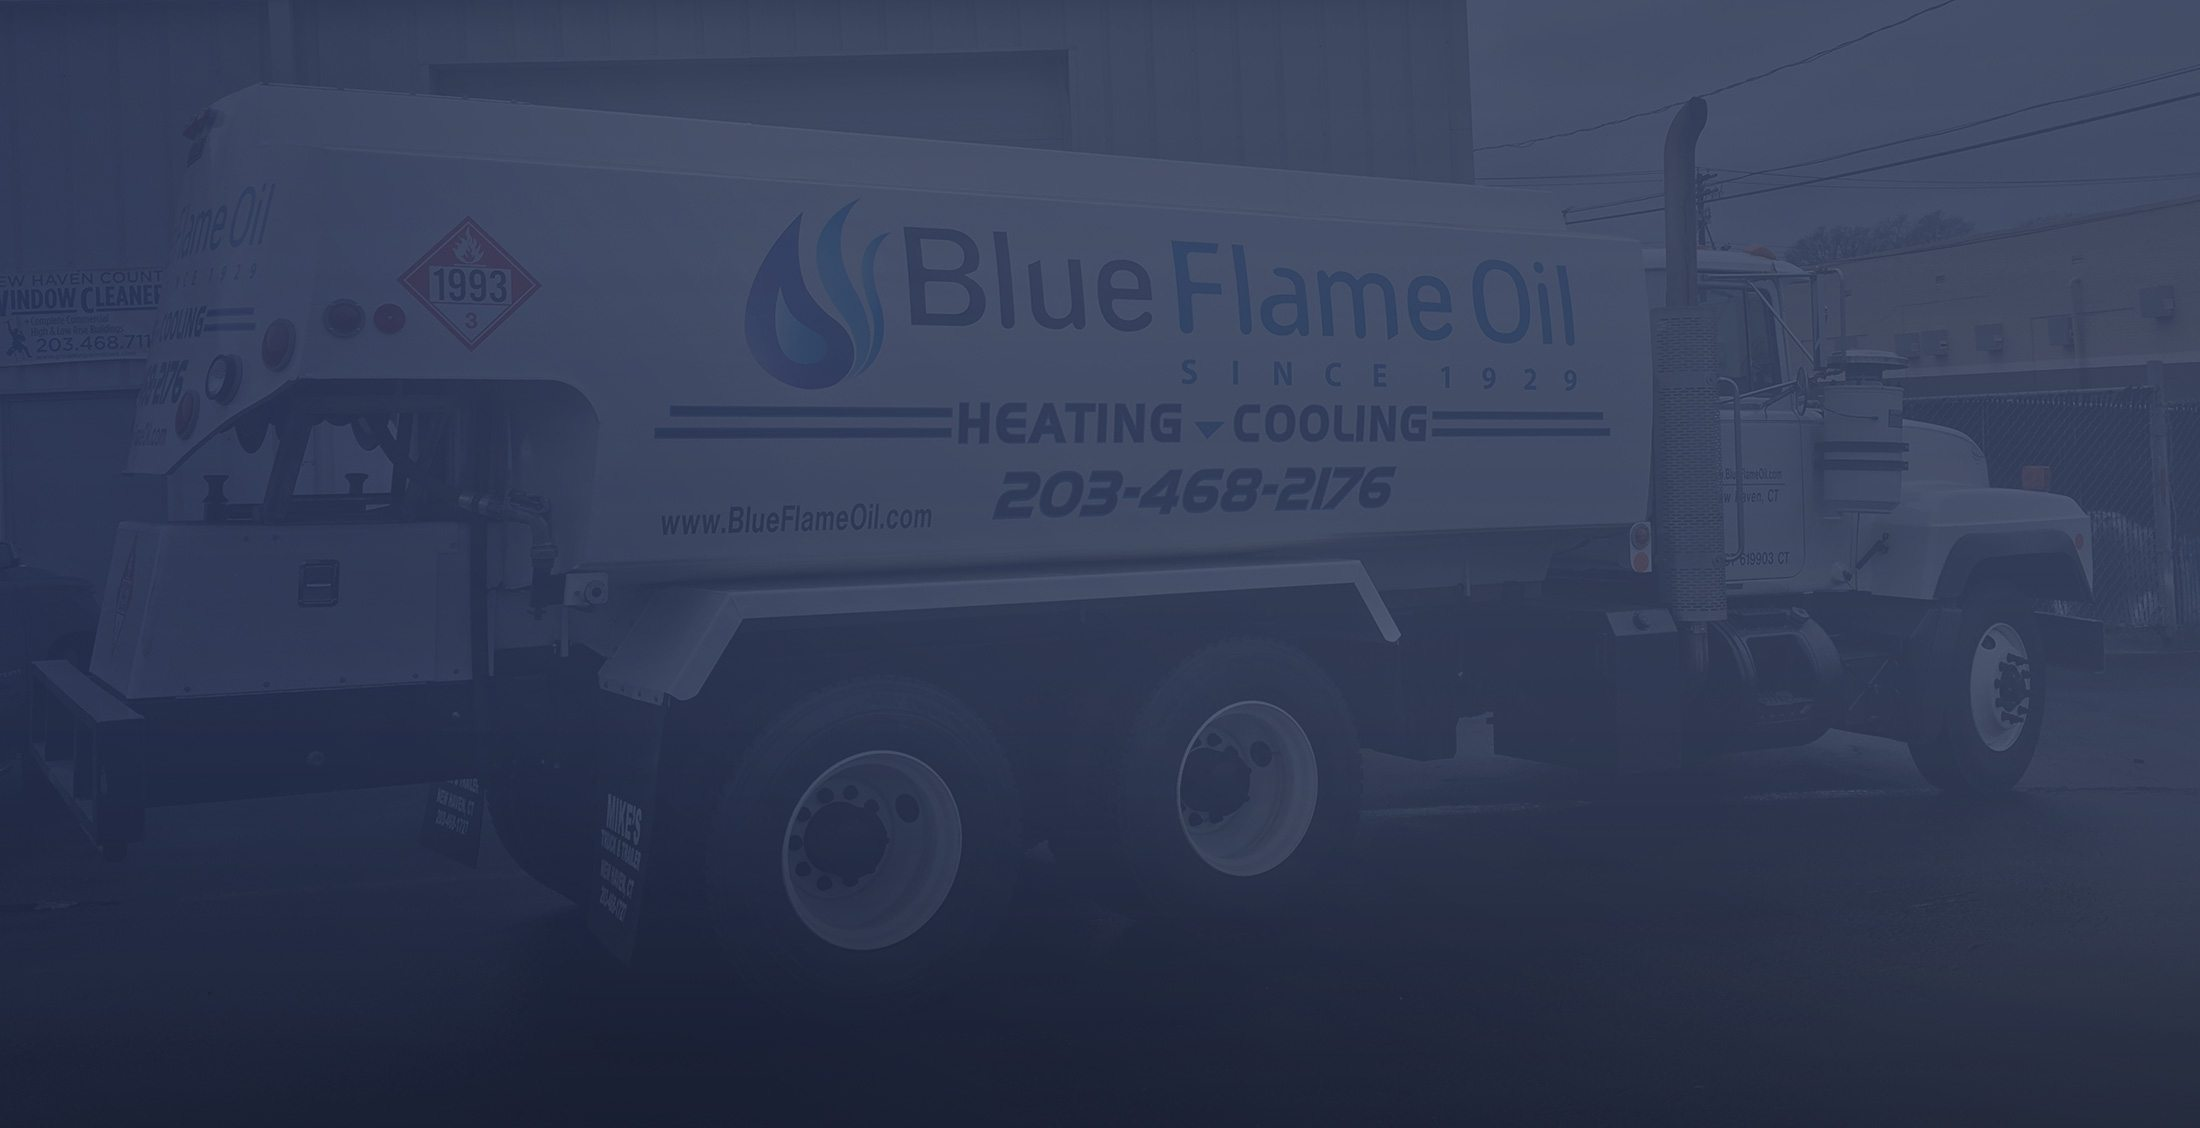 Blue Flame Oil - Automatic Oil Delivery